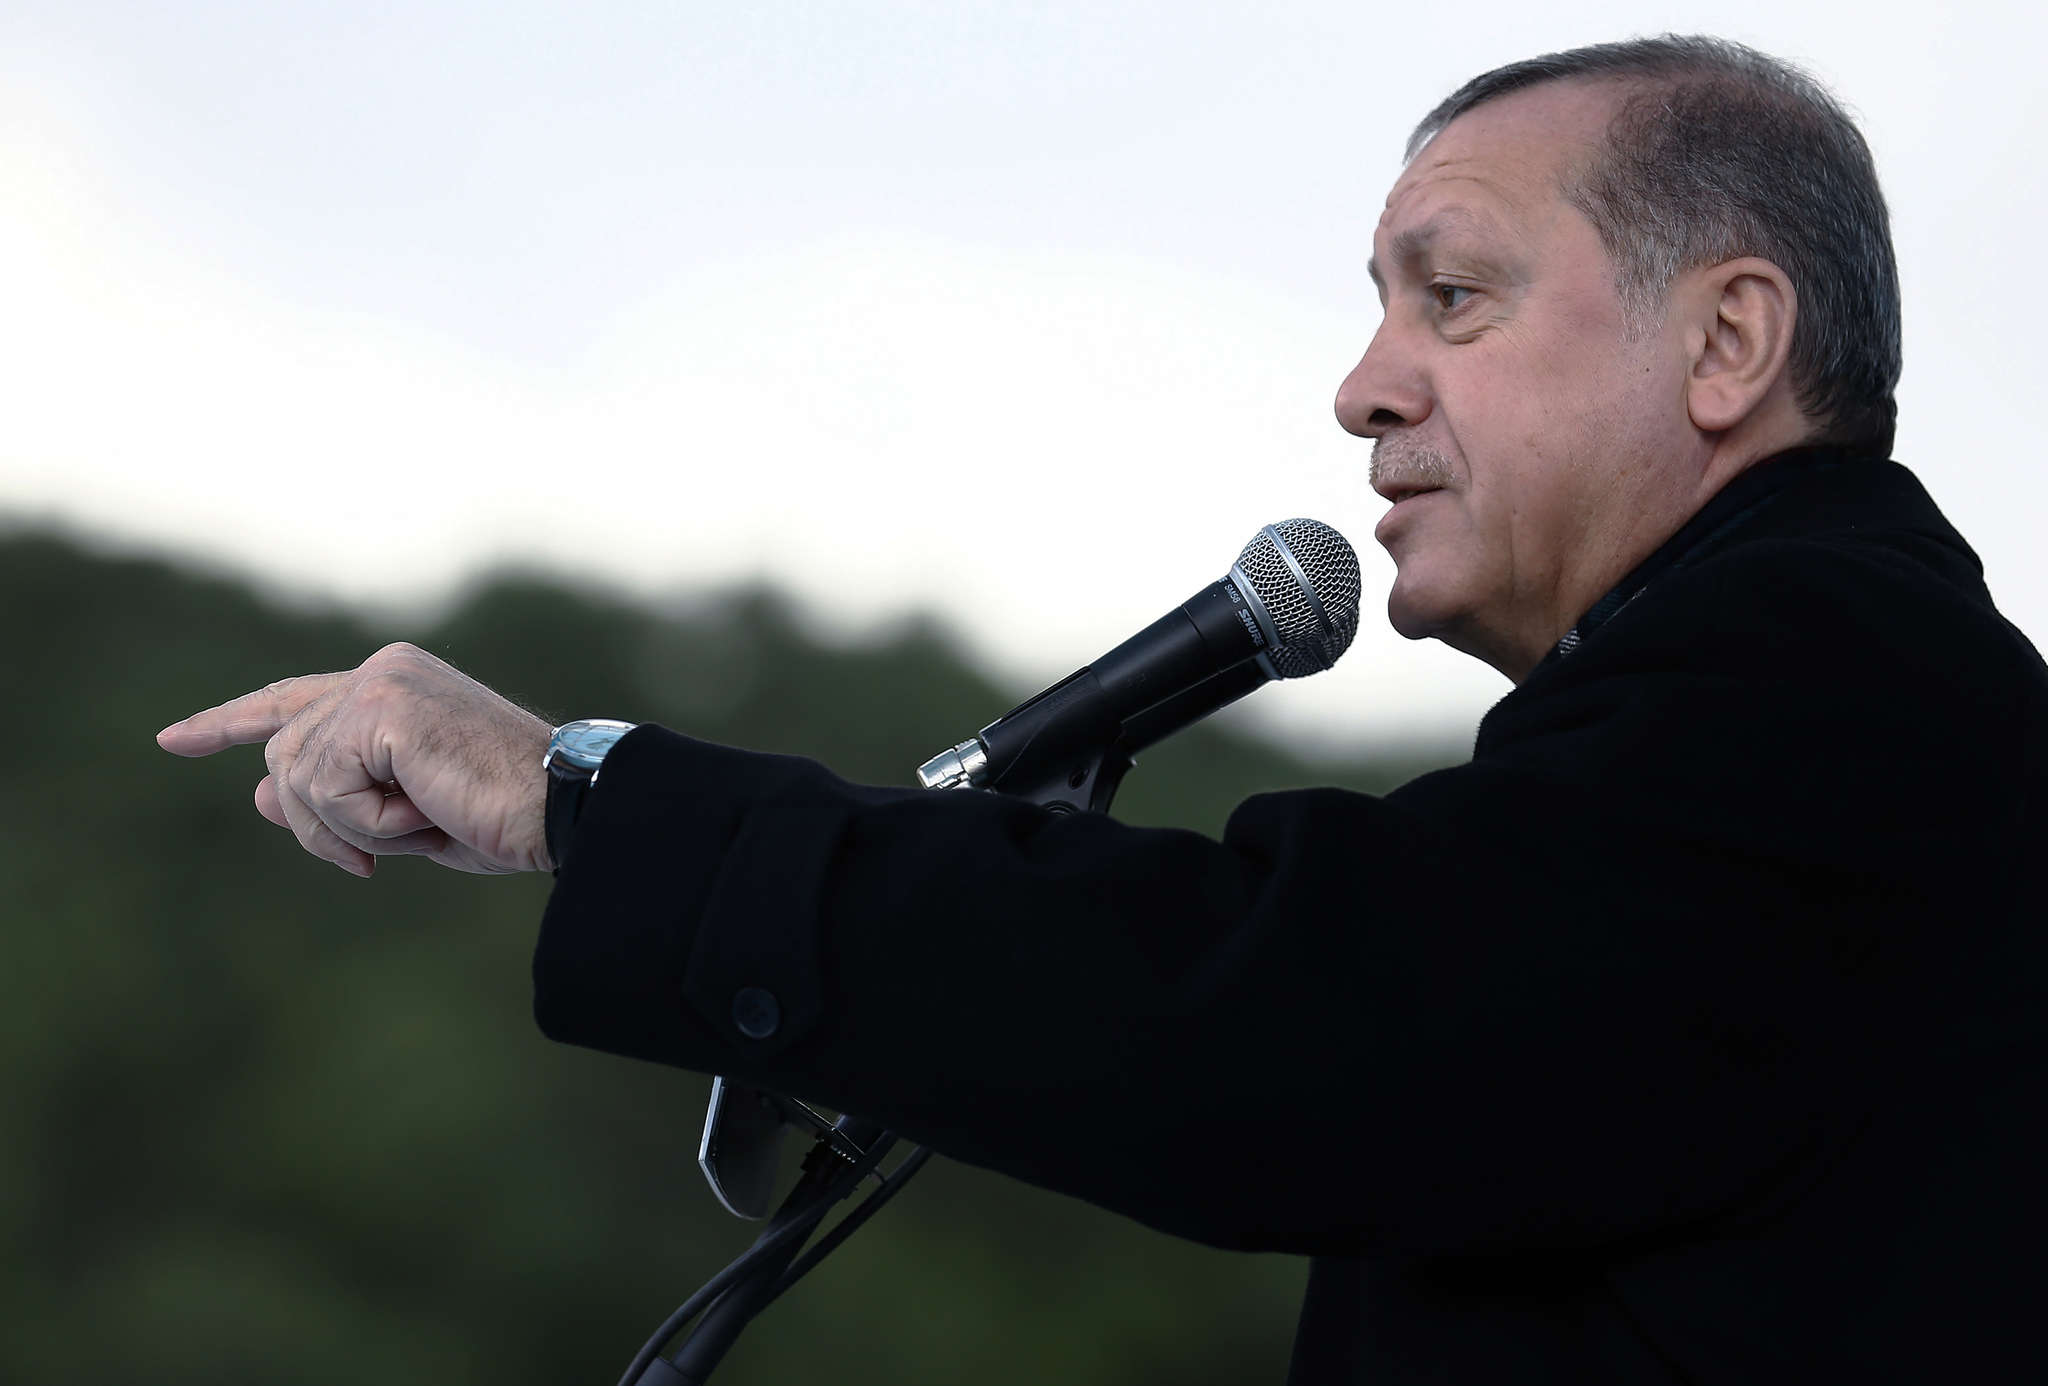 Recep Tayyip Erdogan has been a difficult ally for the U.S.